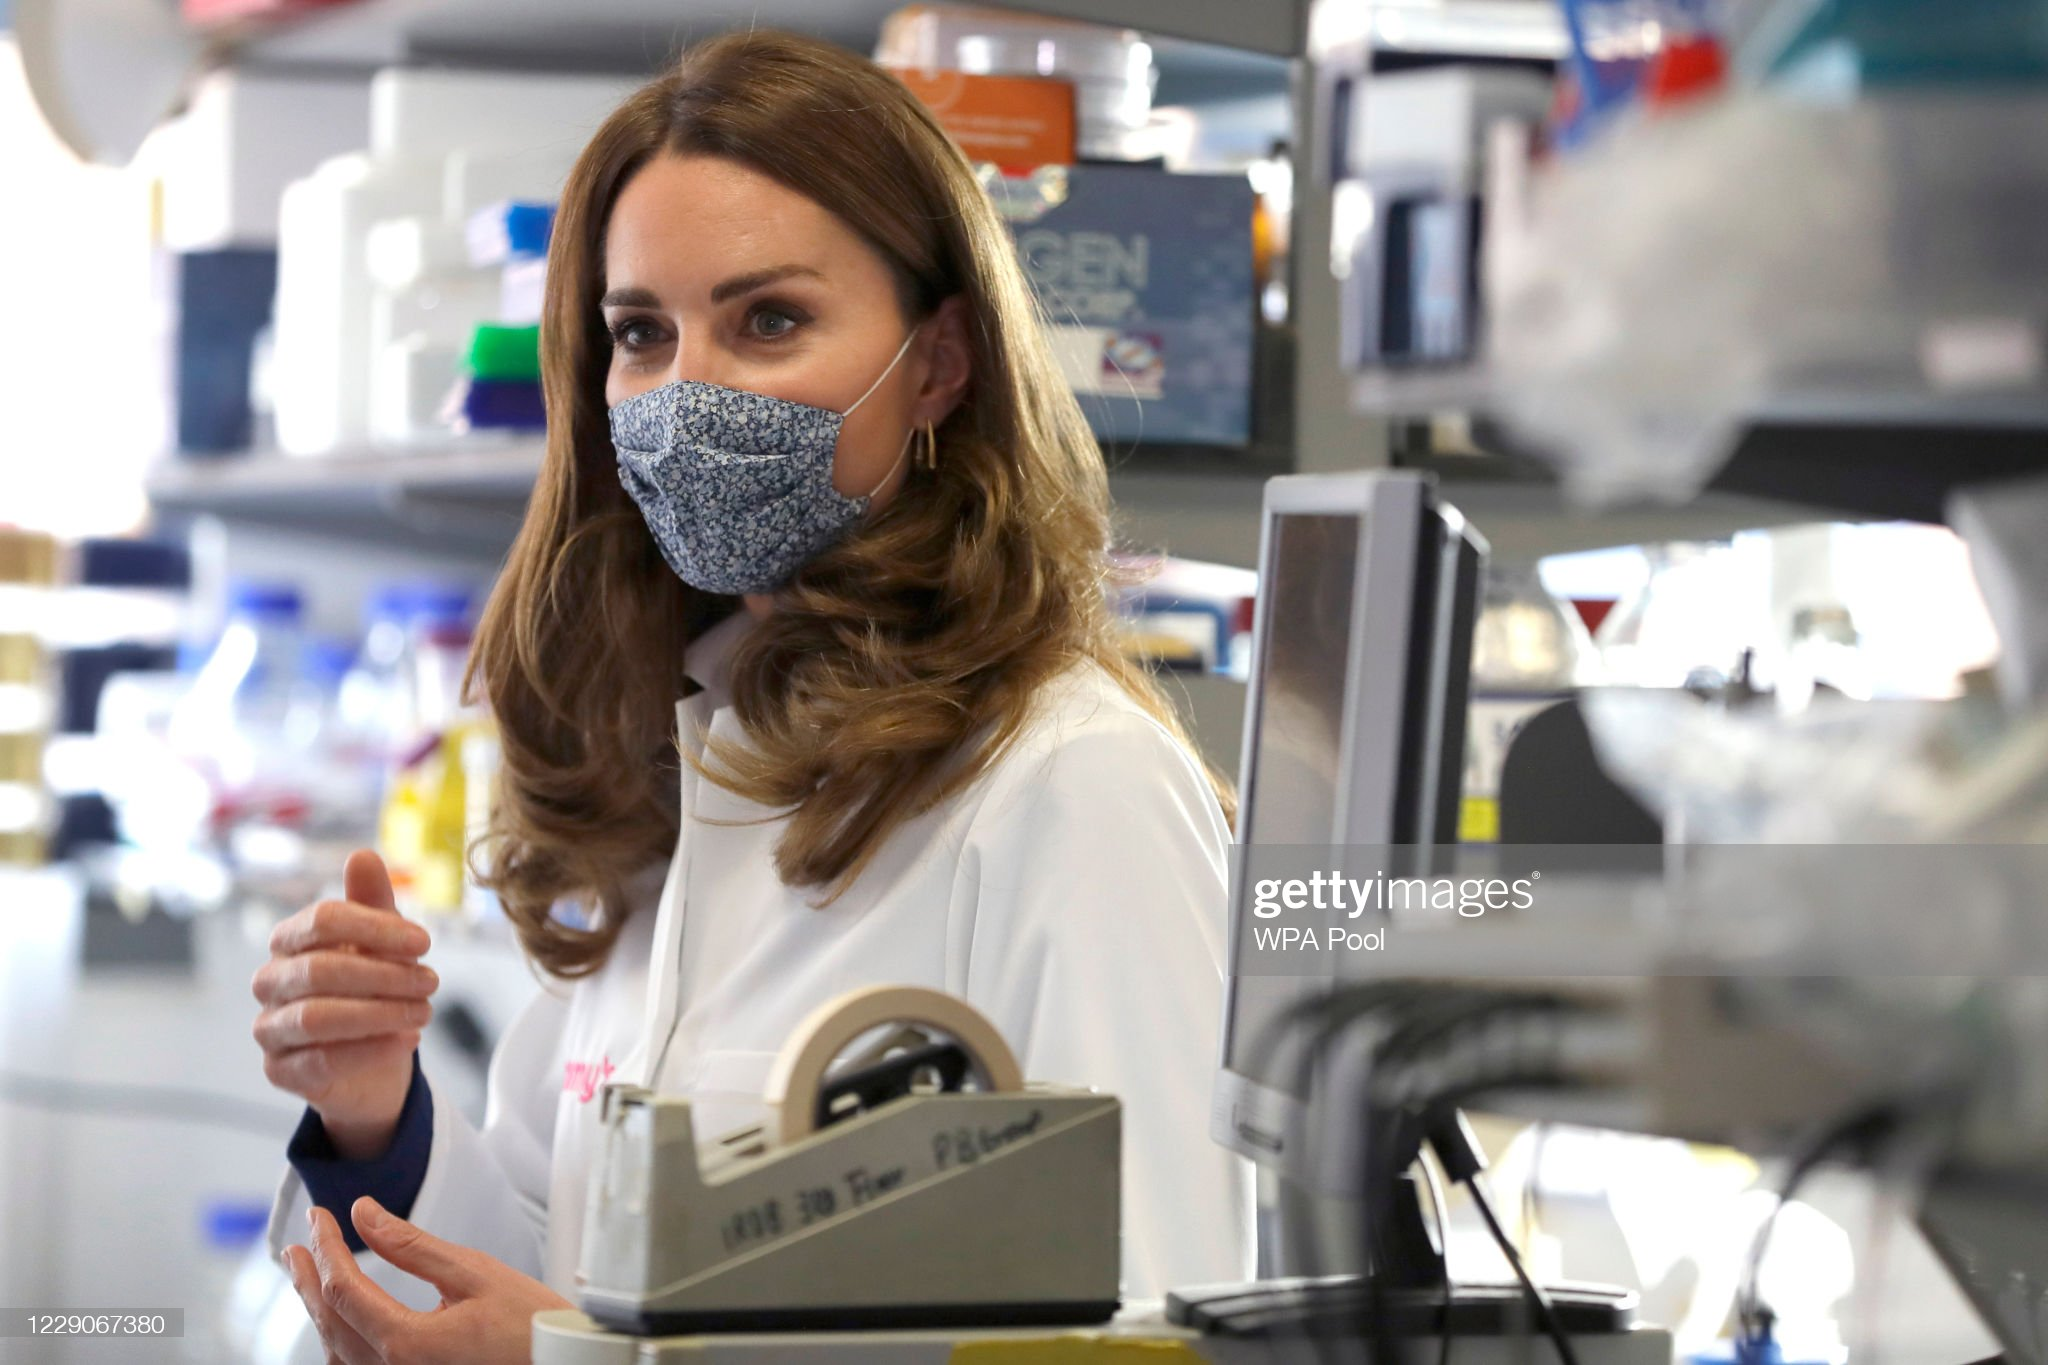 catherine-duchess-of-cambridge-tours-a-laboratory-during-a-visit-to-picture-id1229067380